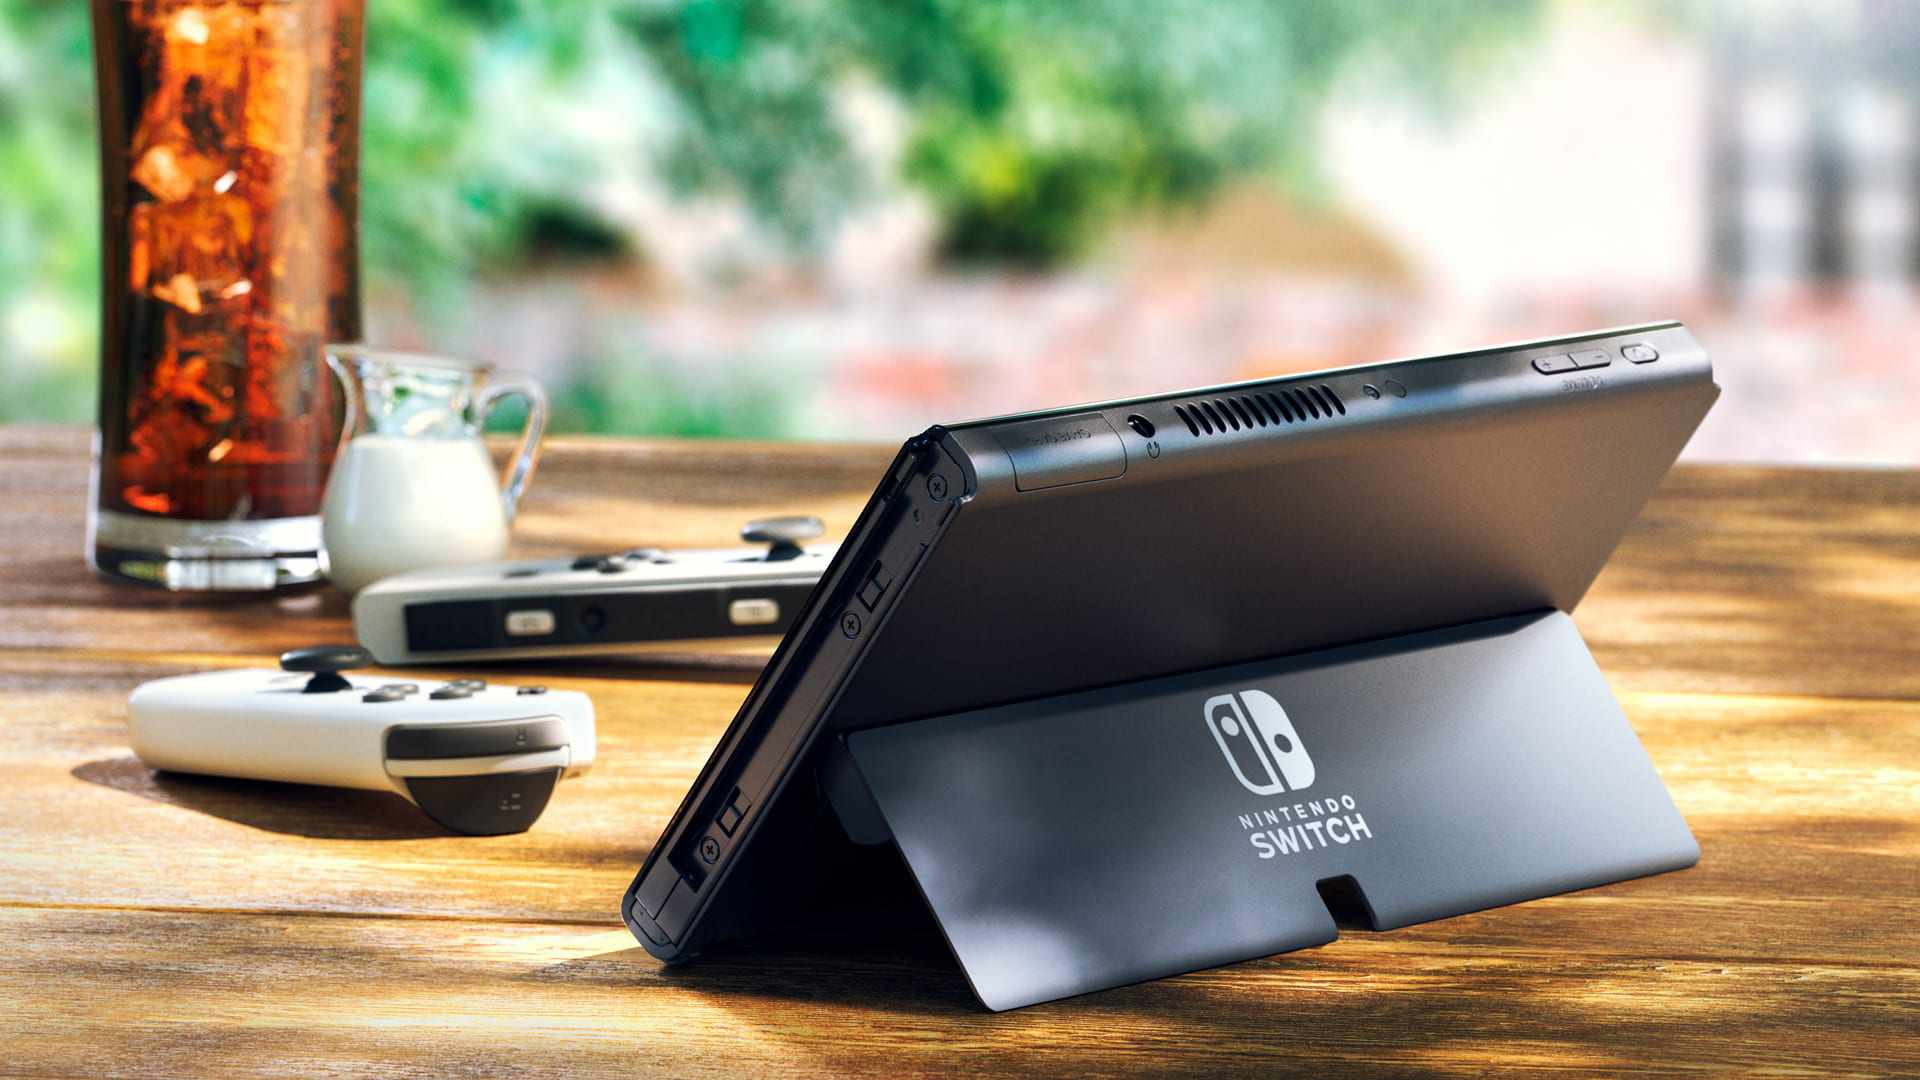 Nintendo Switch OLED model with stand